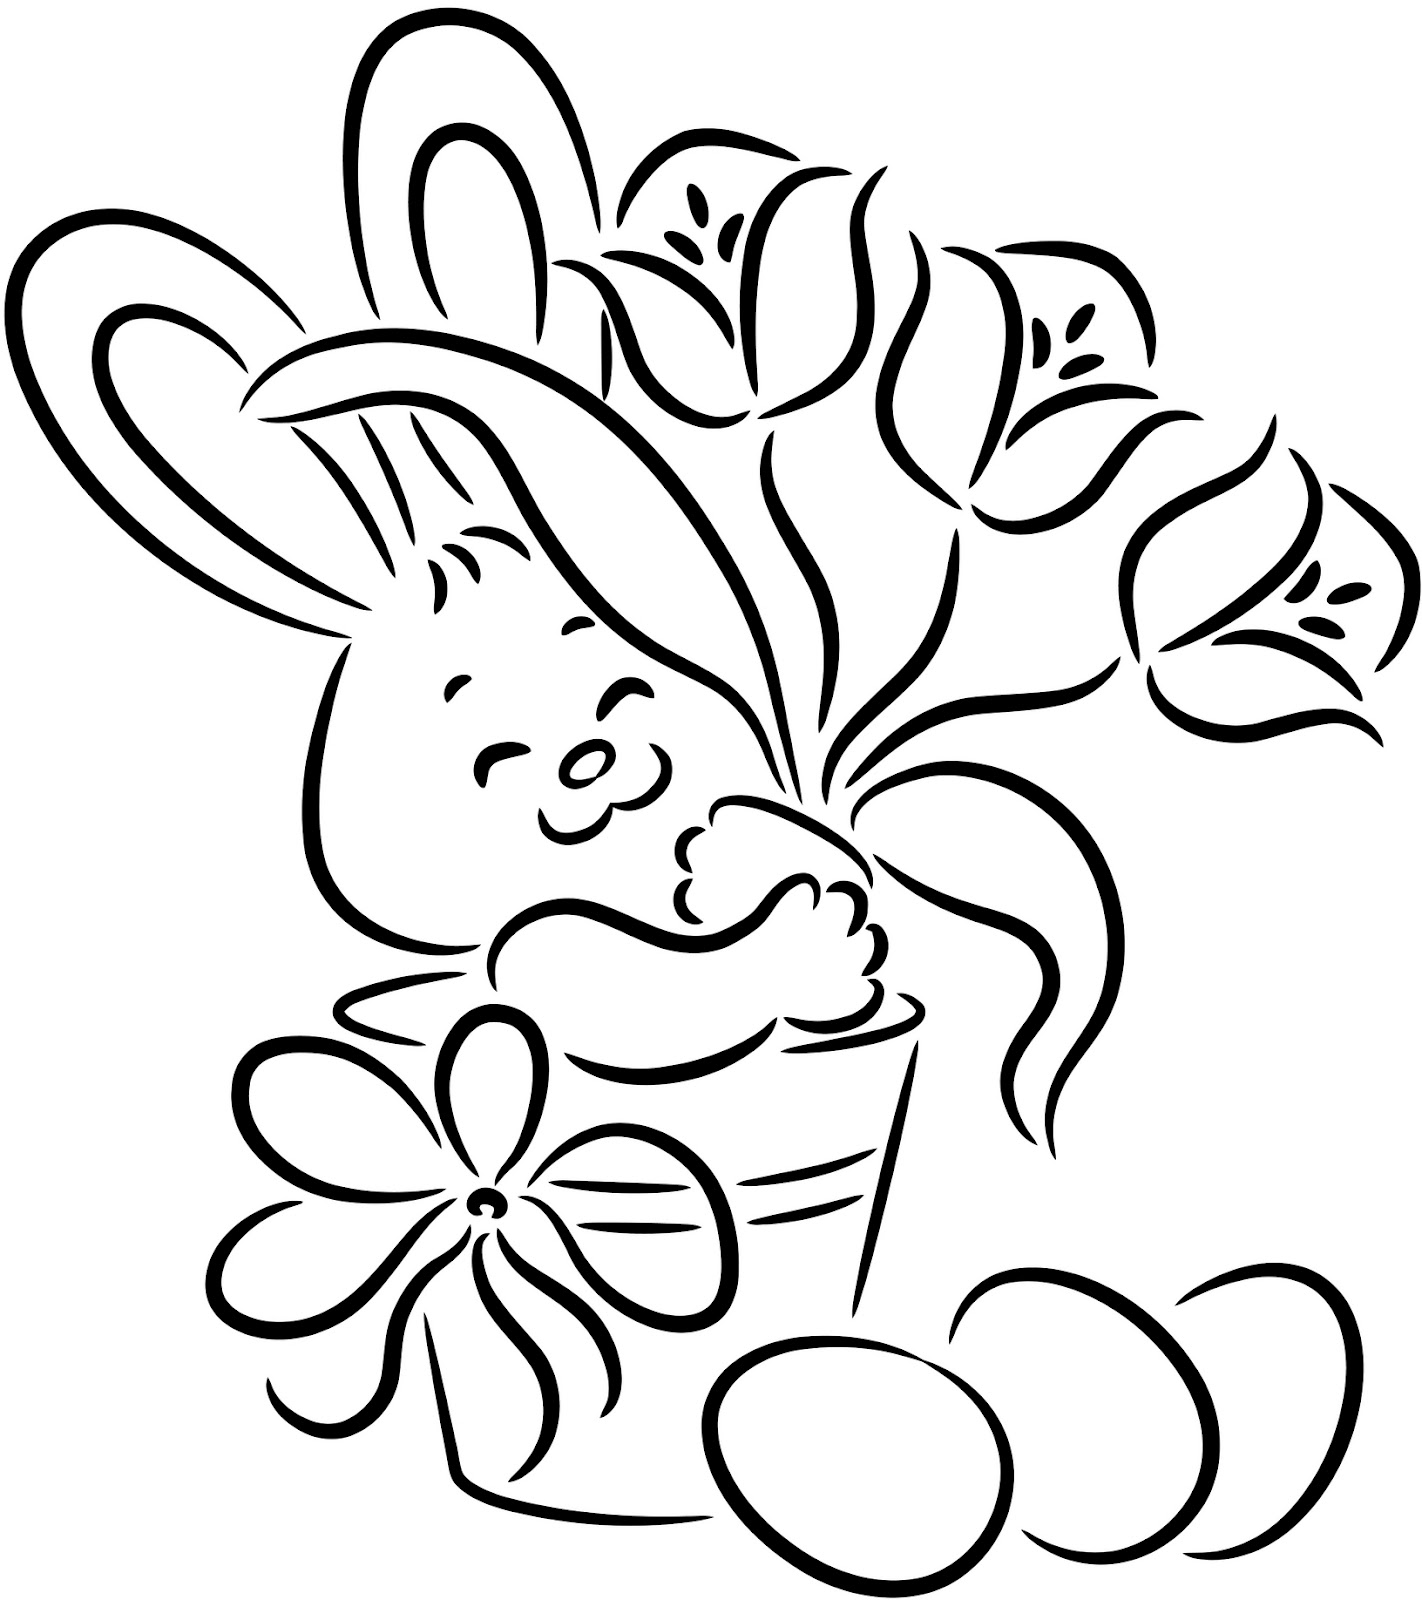 coloring pages easter easter coloring pages for kids coloring pages easter